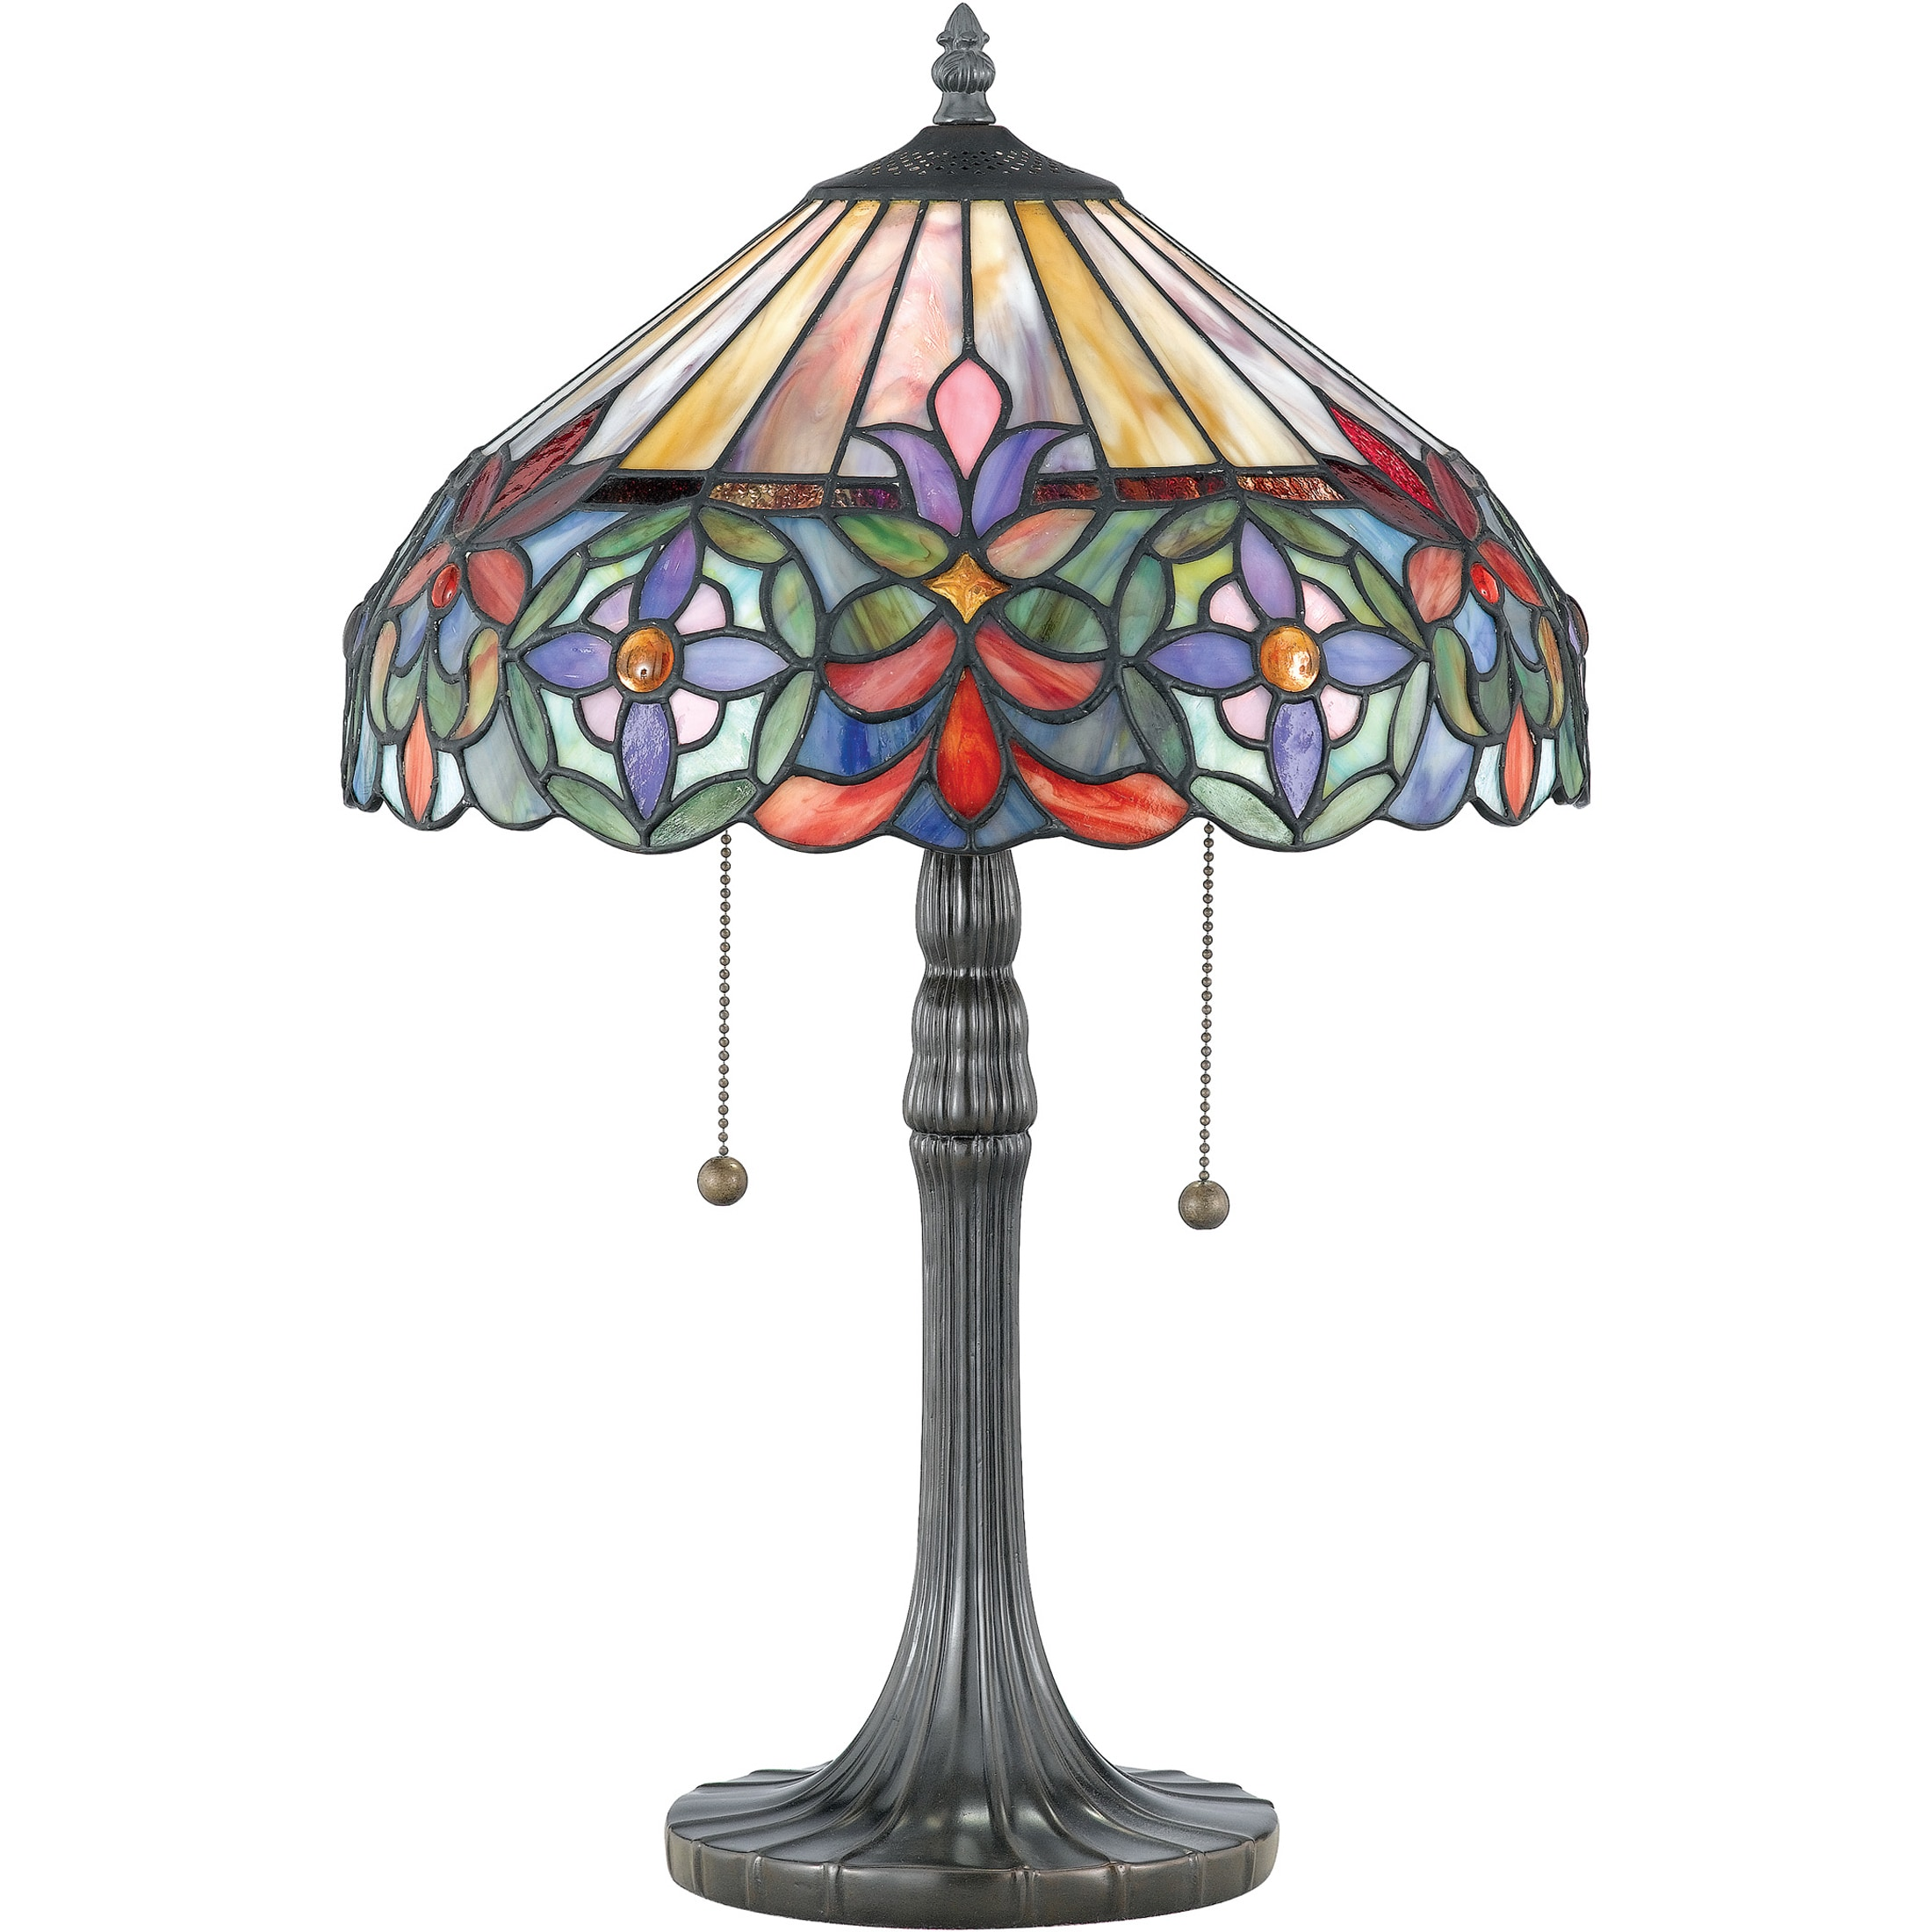 Quoizel Tiffany-style Connie with Vintage Bronze Finish Table Lamp